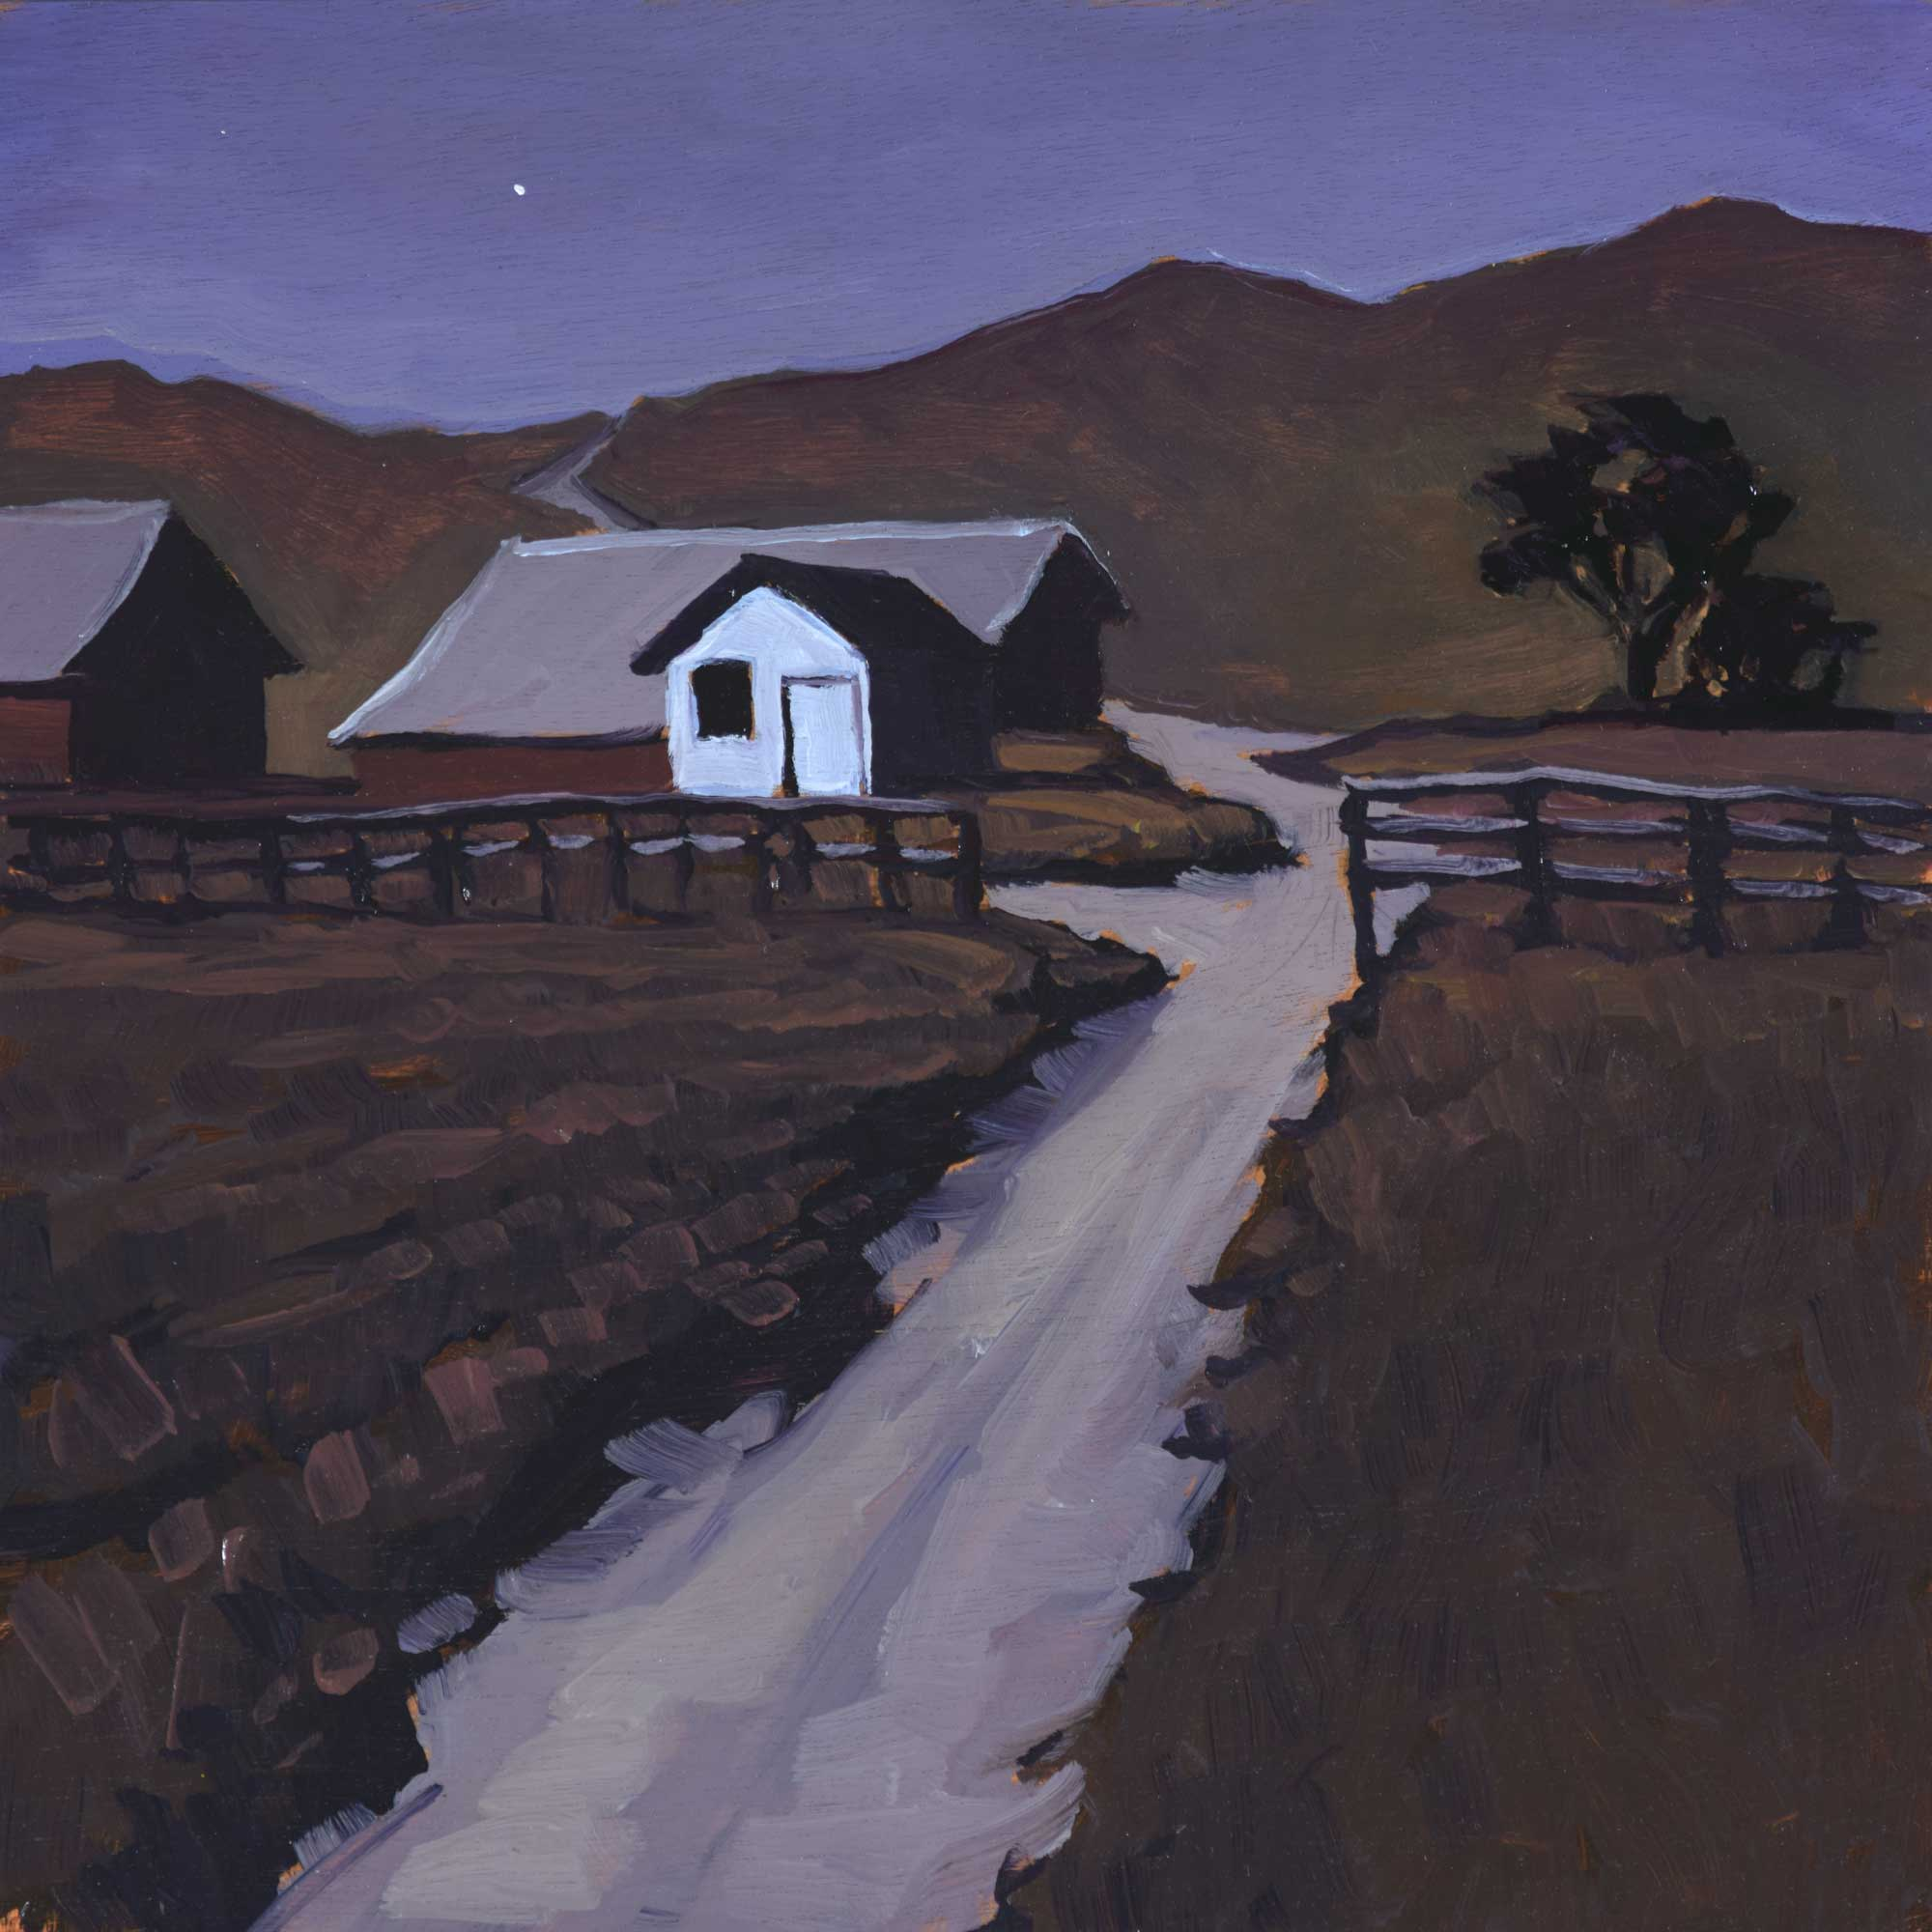 Plein air nocturne artwork of old schoolhouse at Becher's Bay on Santa Rosa Island off the coast of California